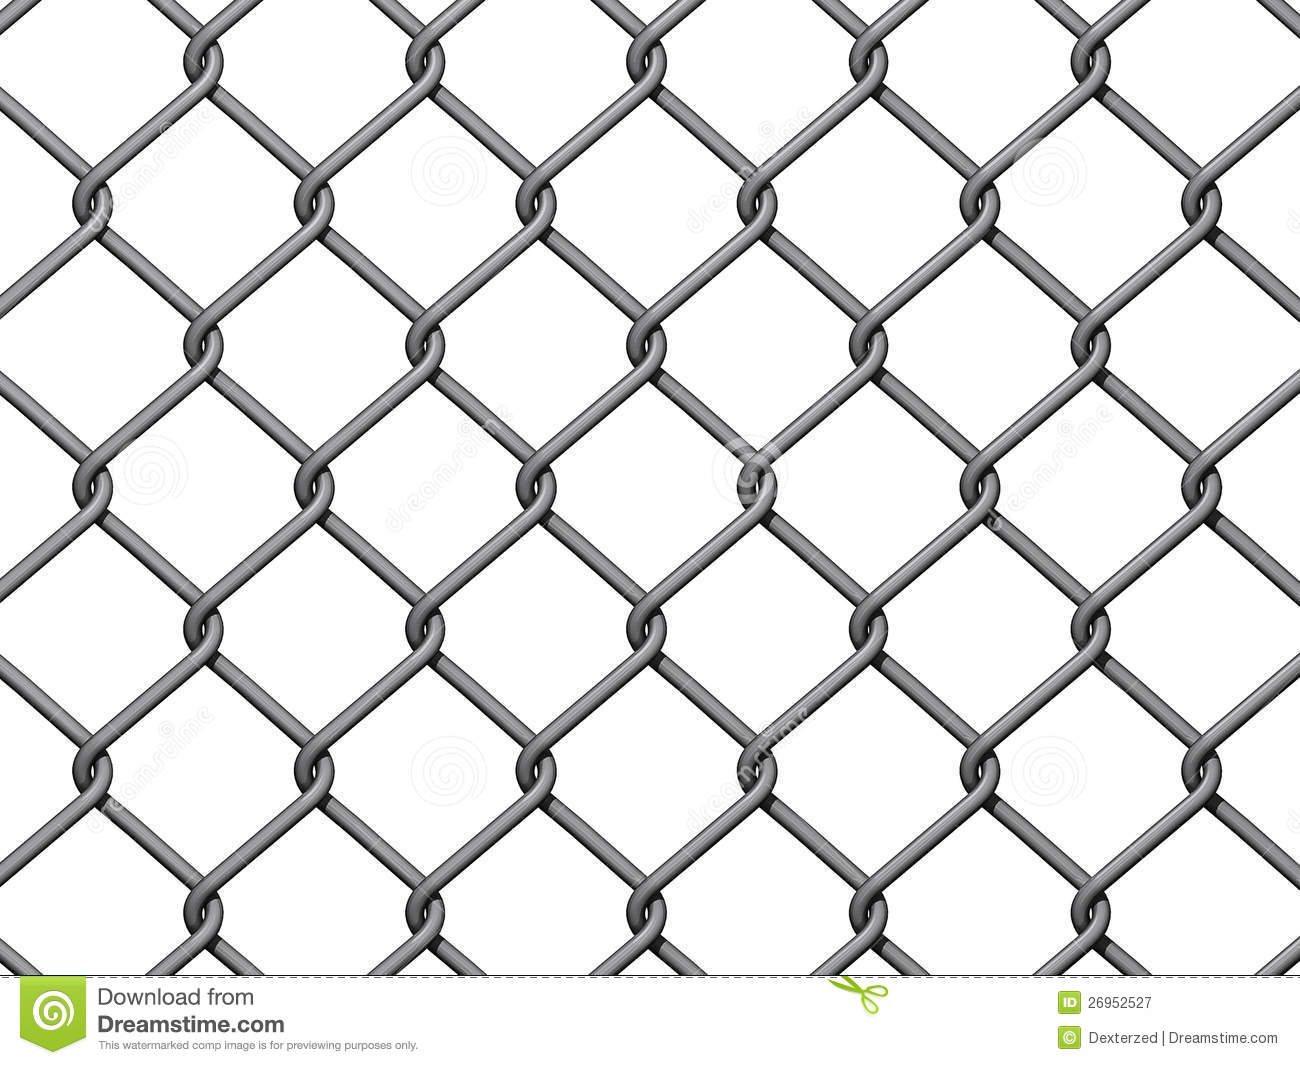 Fence fences ideas clipground. Chain clipart chain link